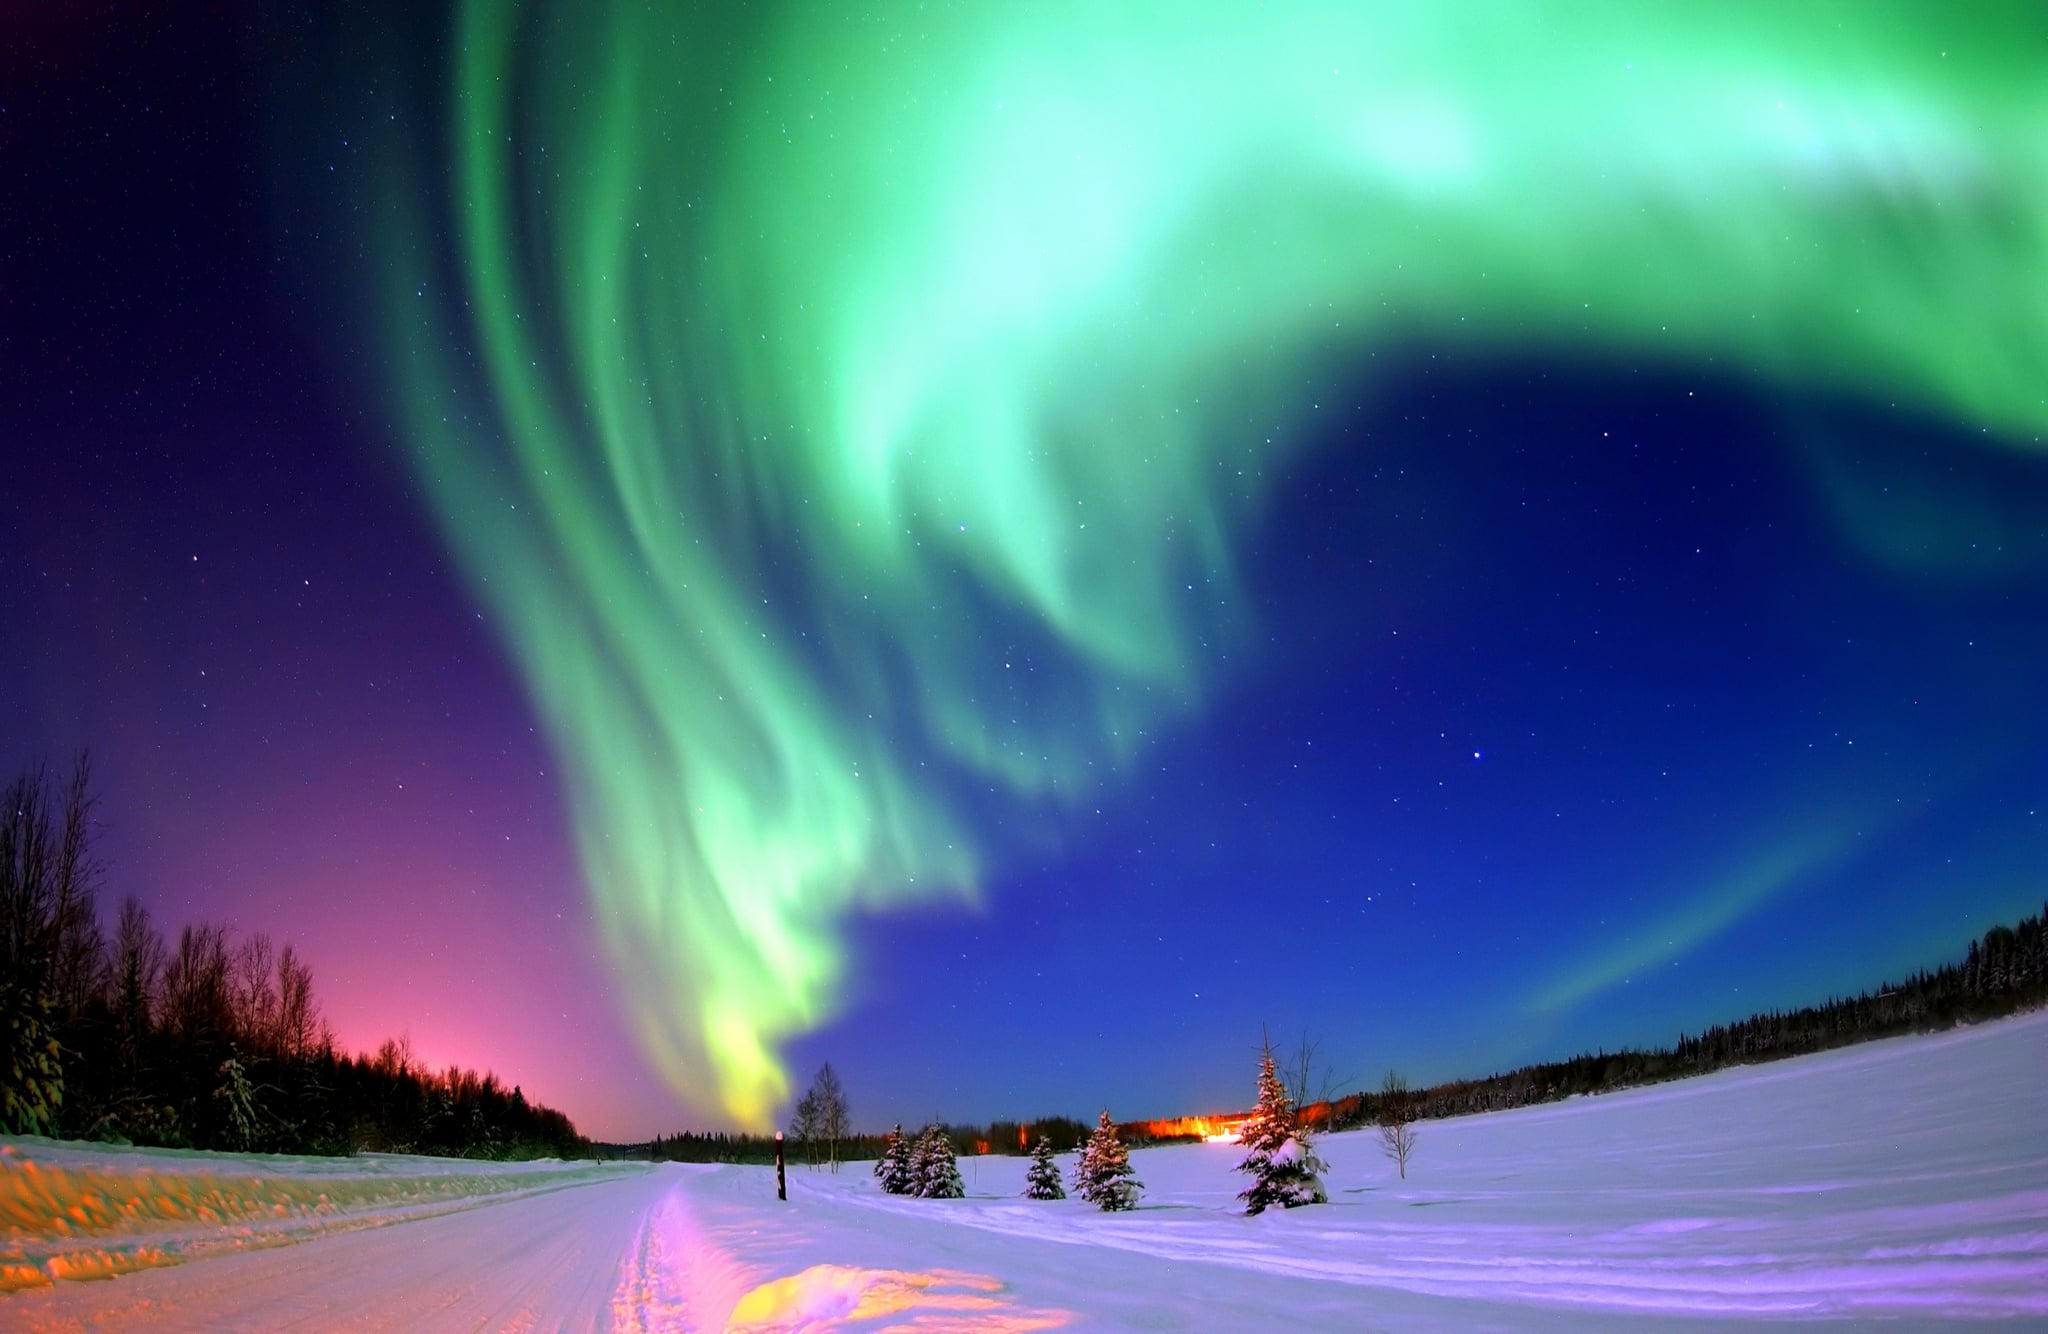 Photograph of the Northern Lights, also known as, an Aurora. An aurora is a natural light display in the sky, especially in the high latitude regions, caused by the collision of solar wind and magnetospheric charged particles with the high altitude atmosphere. Dated 2014 (Photo by:Universal History Archive/Universal Images Group via Getty Images)